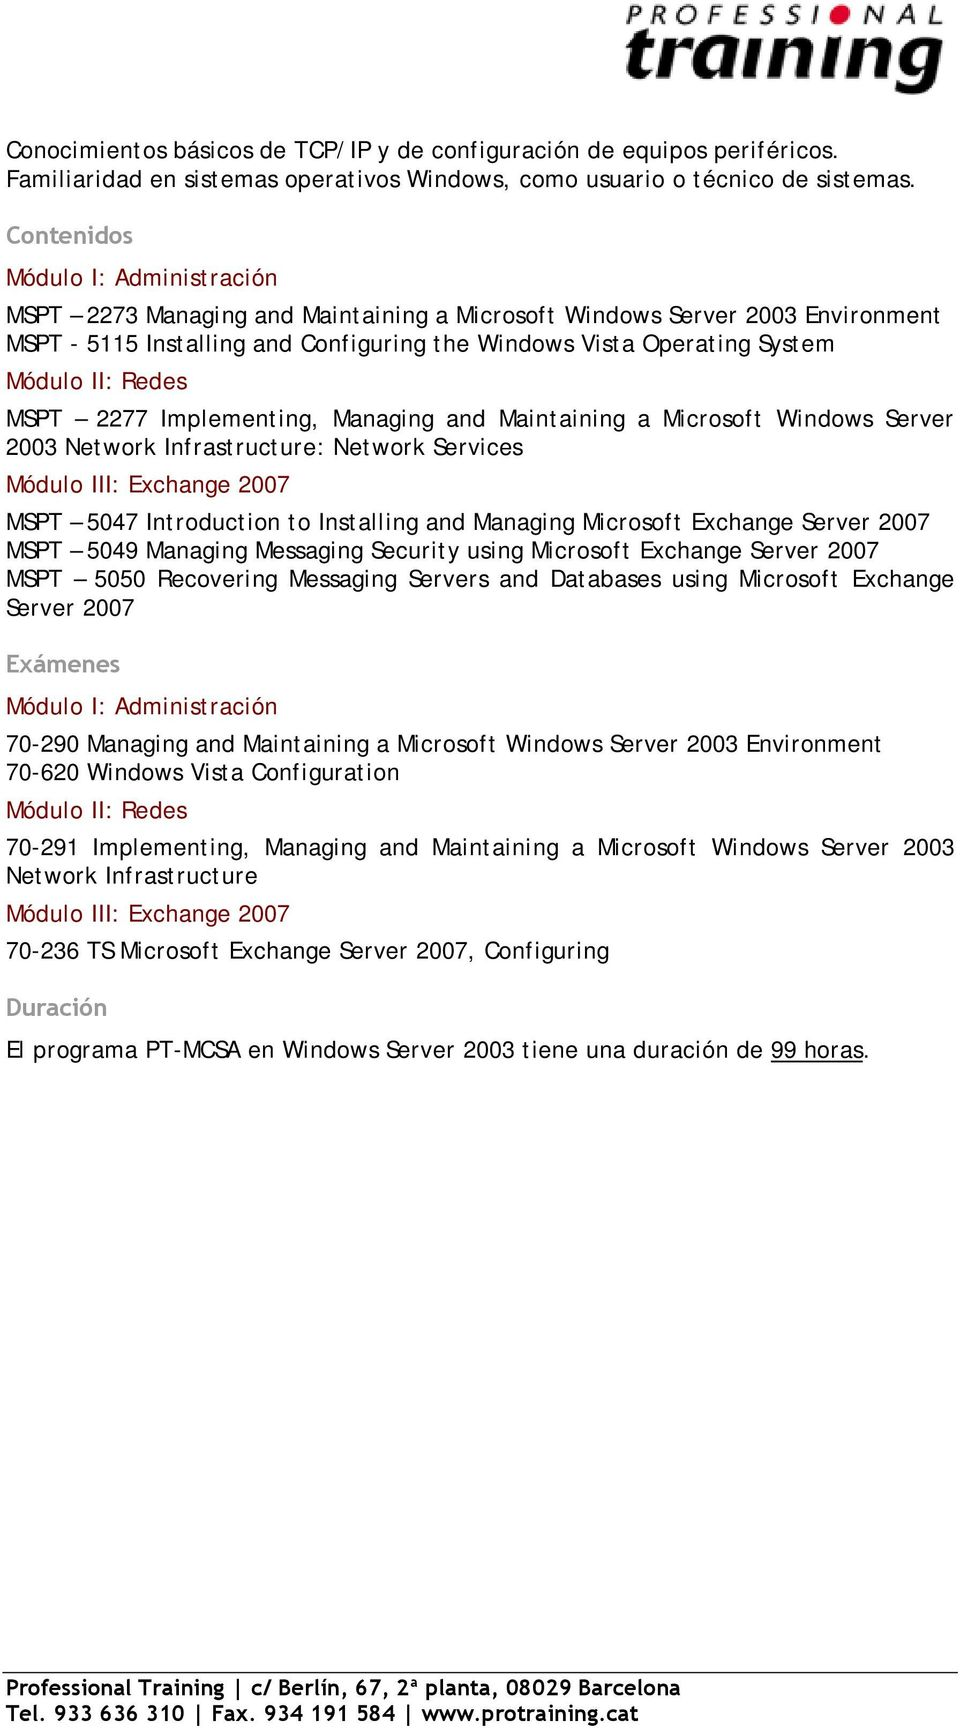 Redes MSPT 2277 Implementing, Managing and Maintaining a Microsoft Windows Server 2003 Network Infrastructure: Network Services Módulo III: Exchange 2007 MSPT 5047 Introduction to Installing and